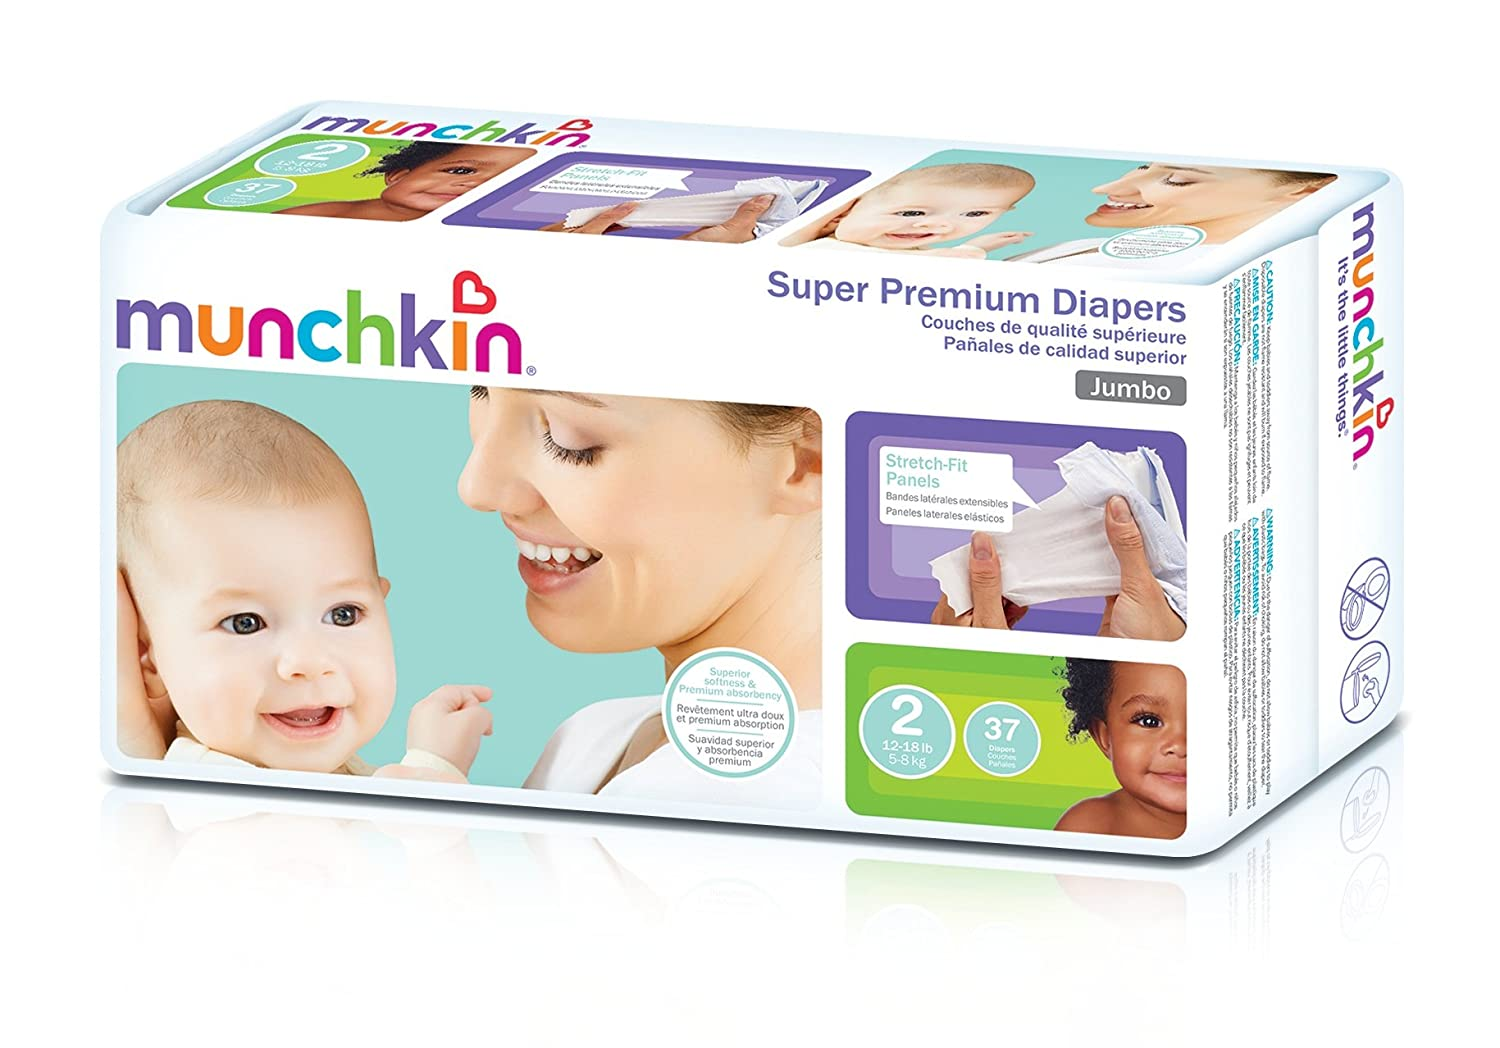 Amazon.com: Munchkin Super Premium Diapers, Size 2/Small-Med Ultra (12-18 Pounds), 148 Count: Health & Personal Care